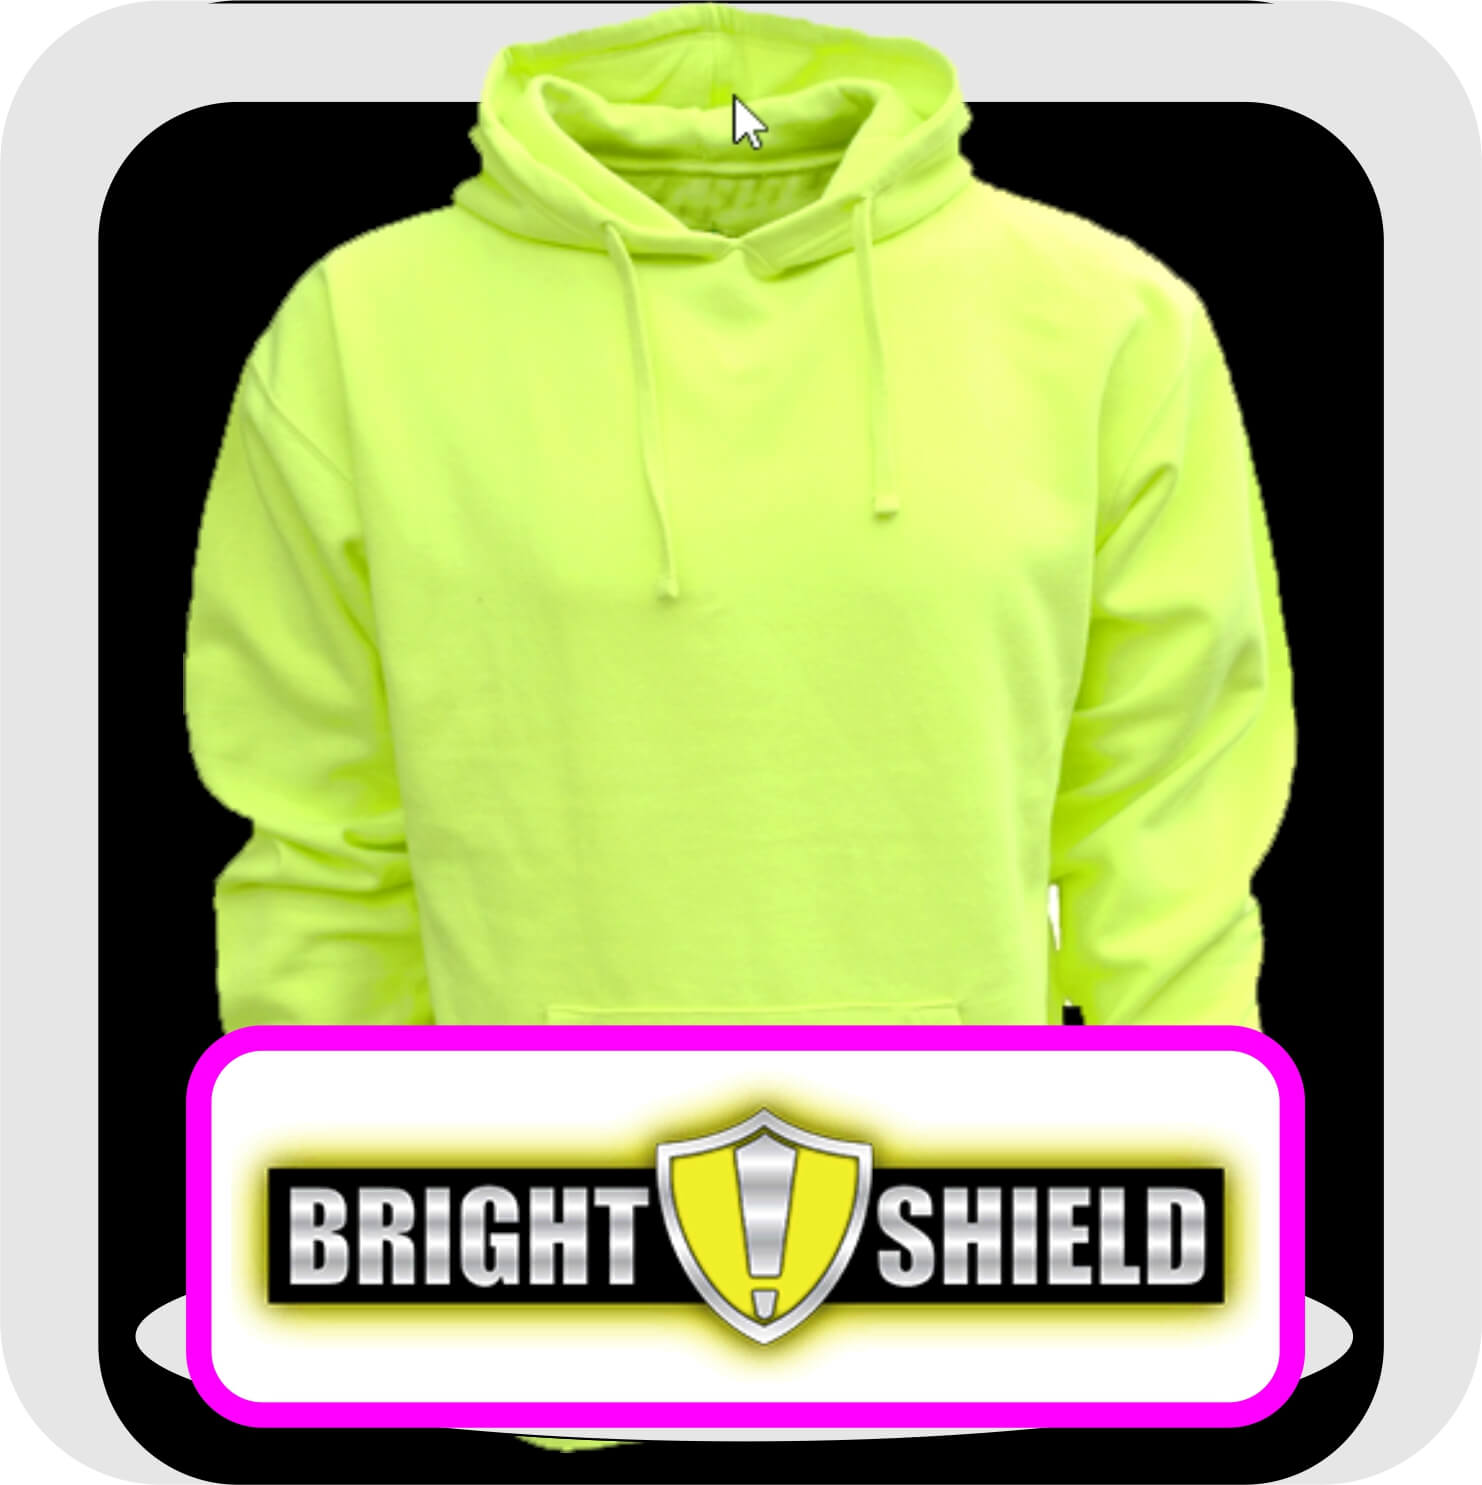 Bright-Shield-Hoodies-Safety-Green